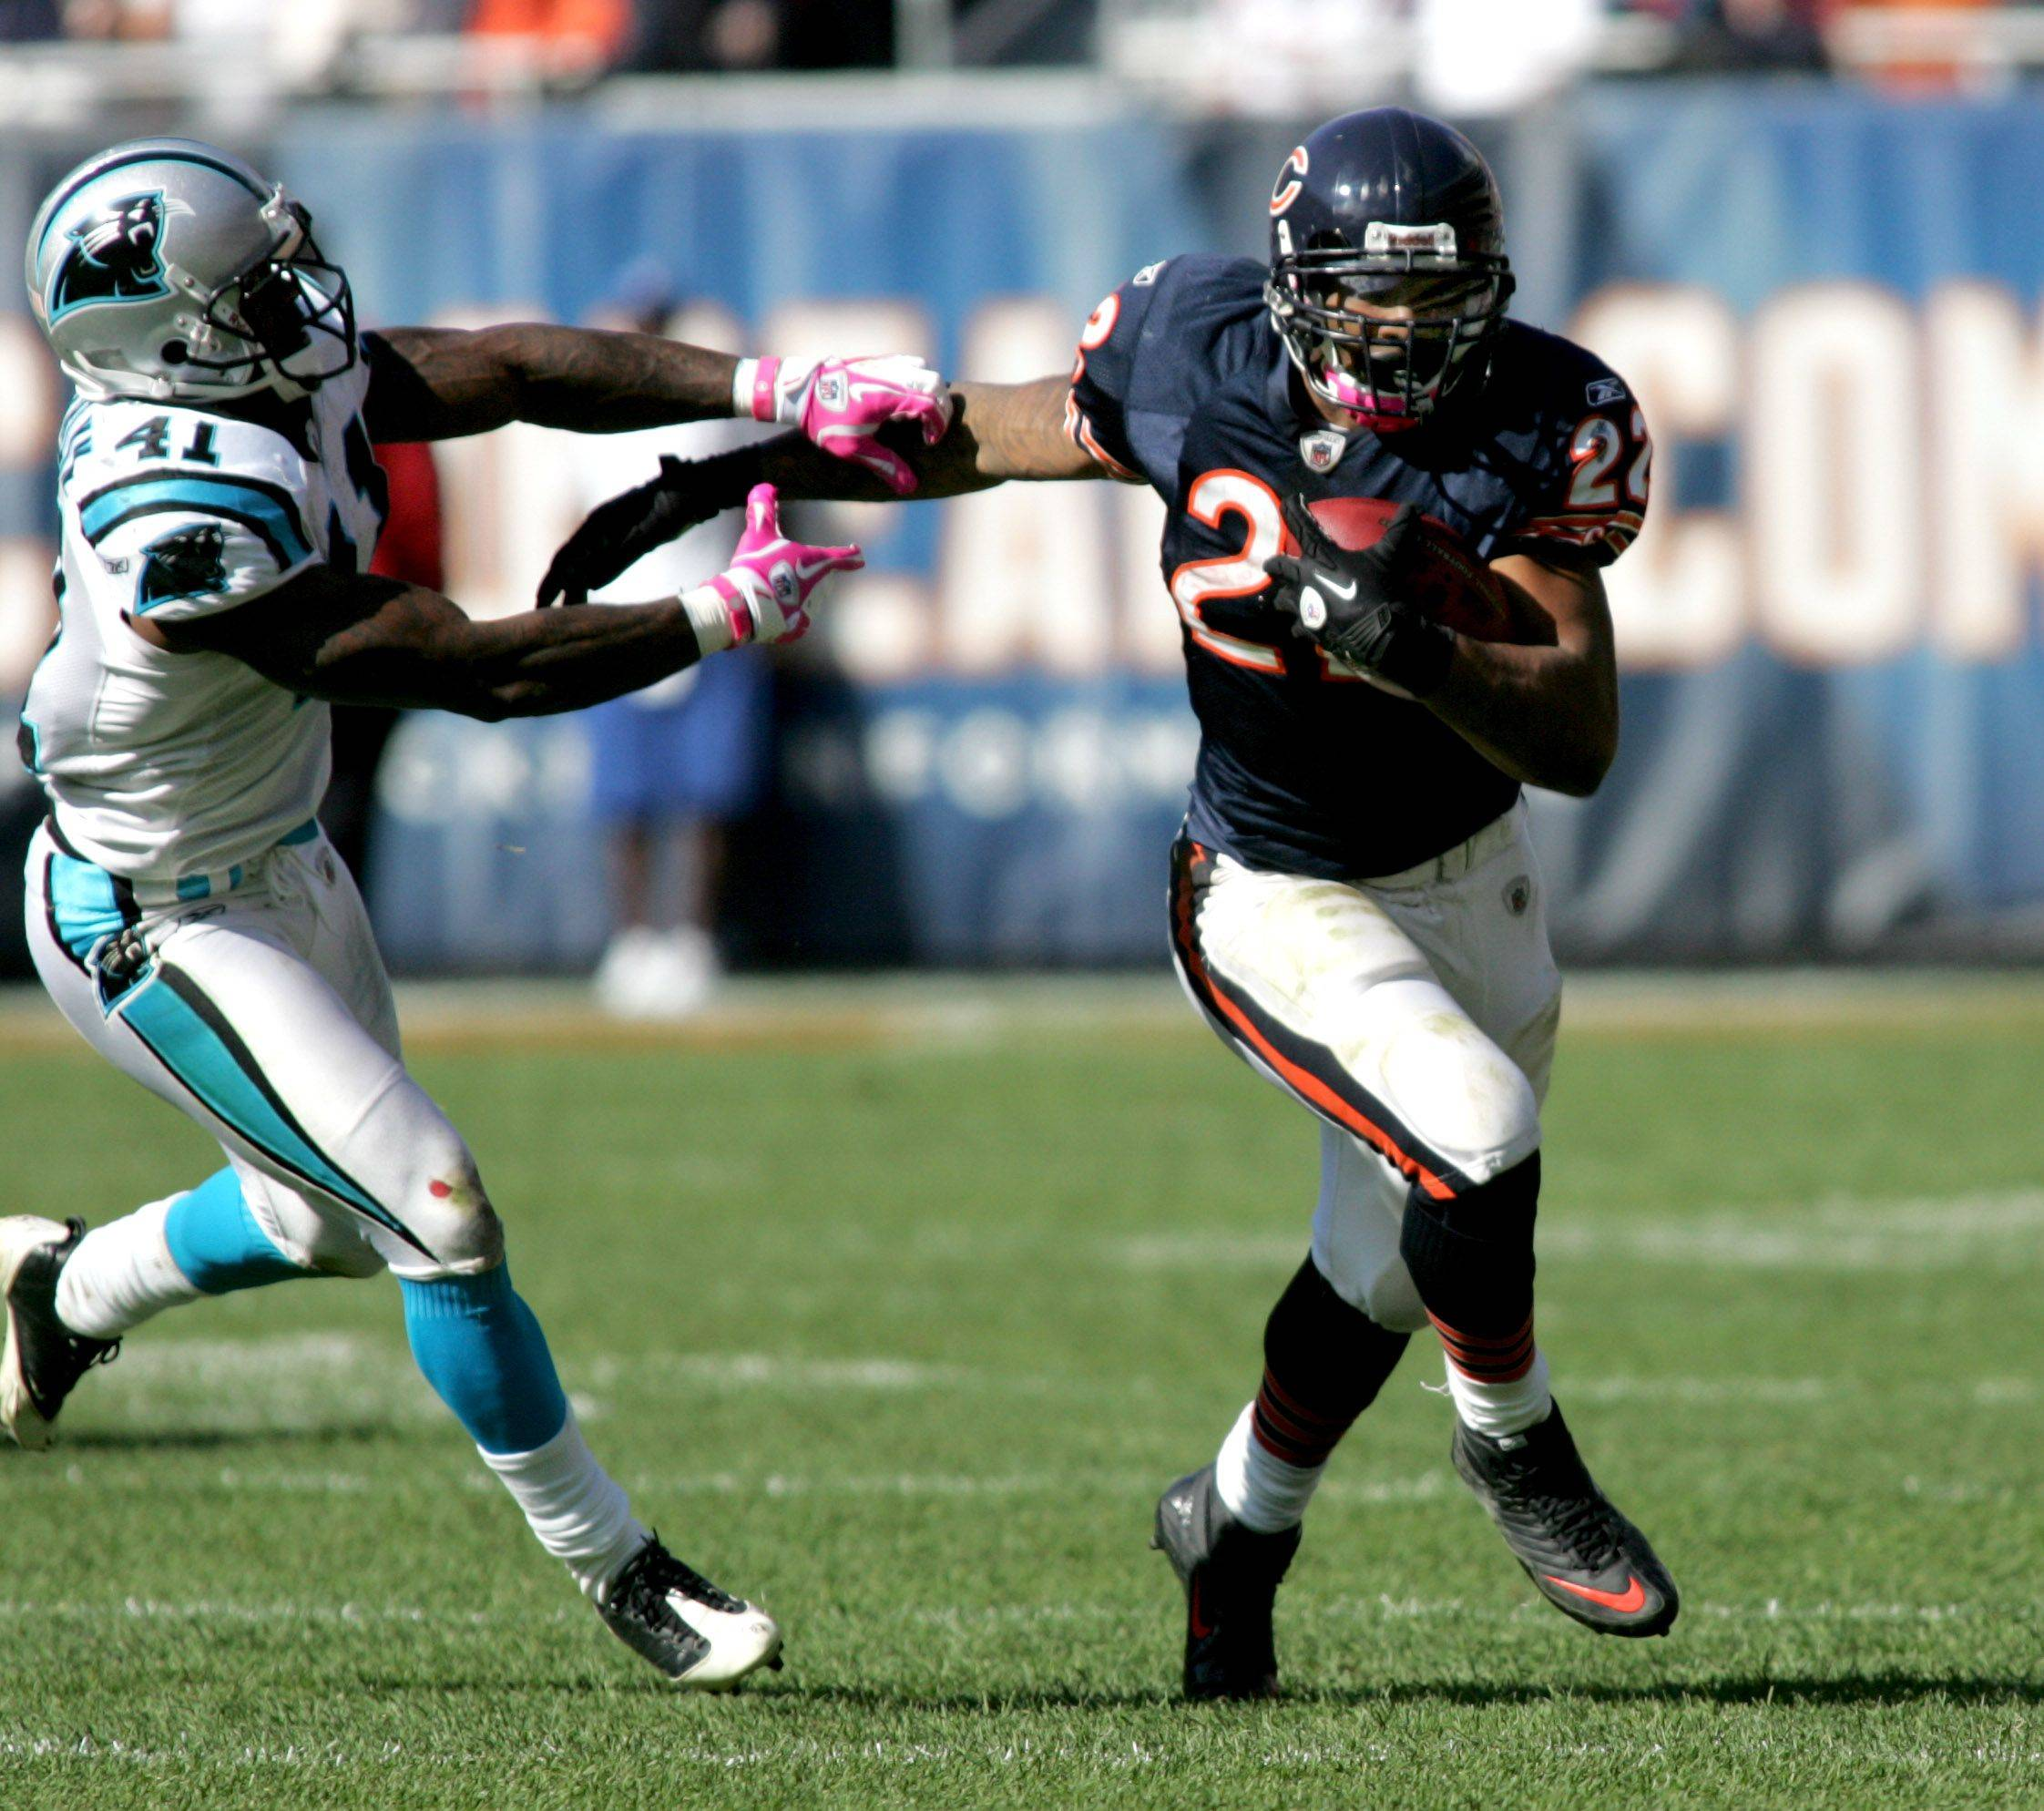 Matt Forte of the Chicago Bears with the ball as Captain Munnerlyn of Carolina Panthers moves in for a tackle at Soldier Field on Sunday.